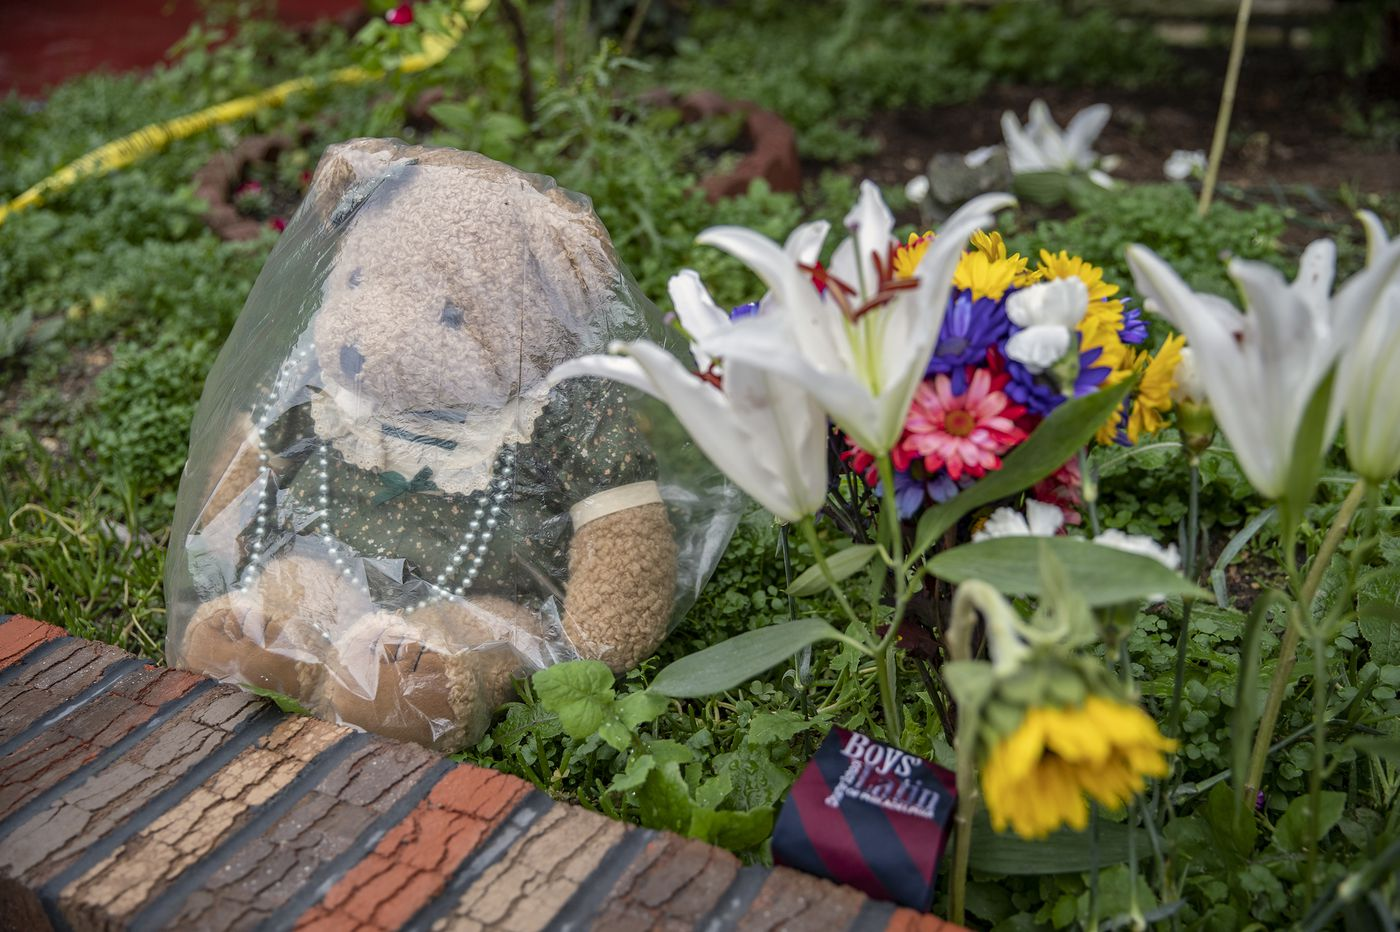 Tragedy a too-costly lesson about mental health treatment access | Editorial